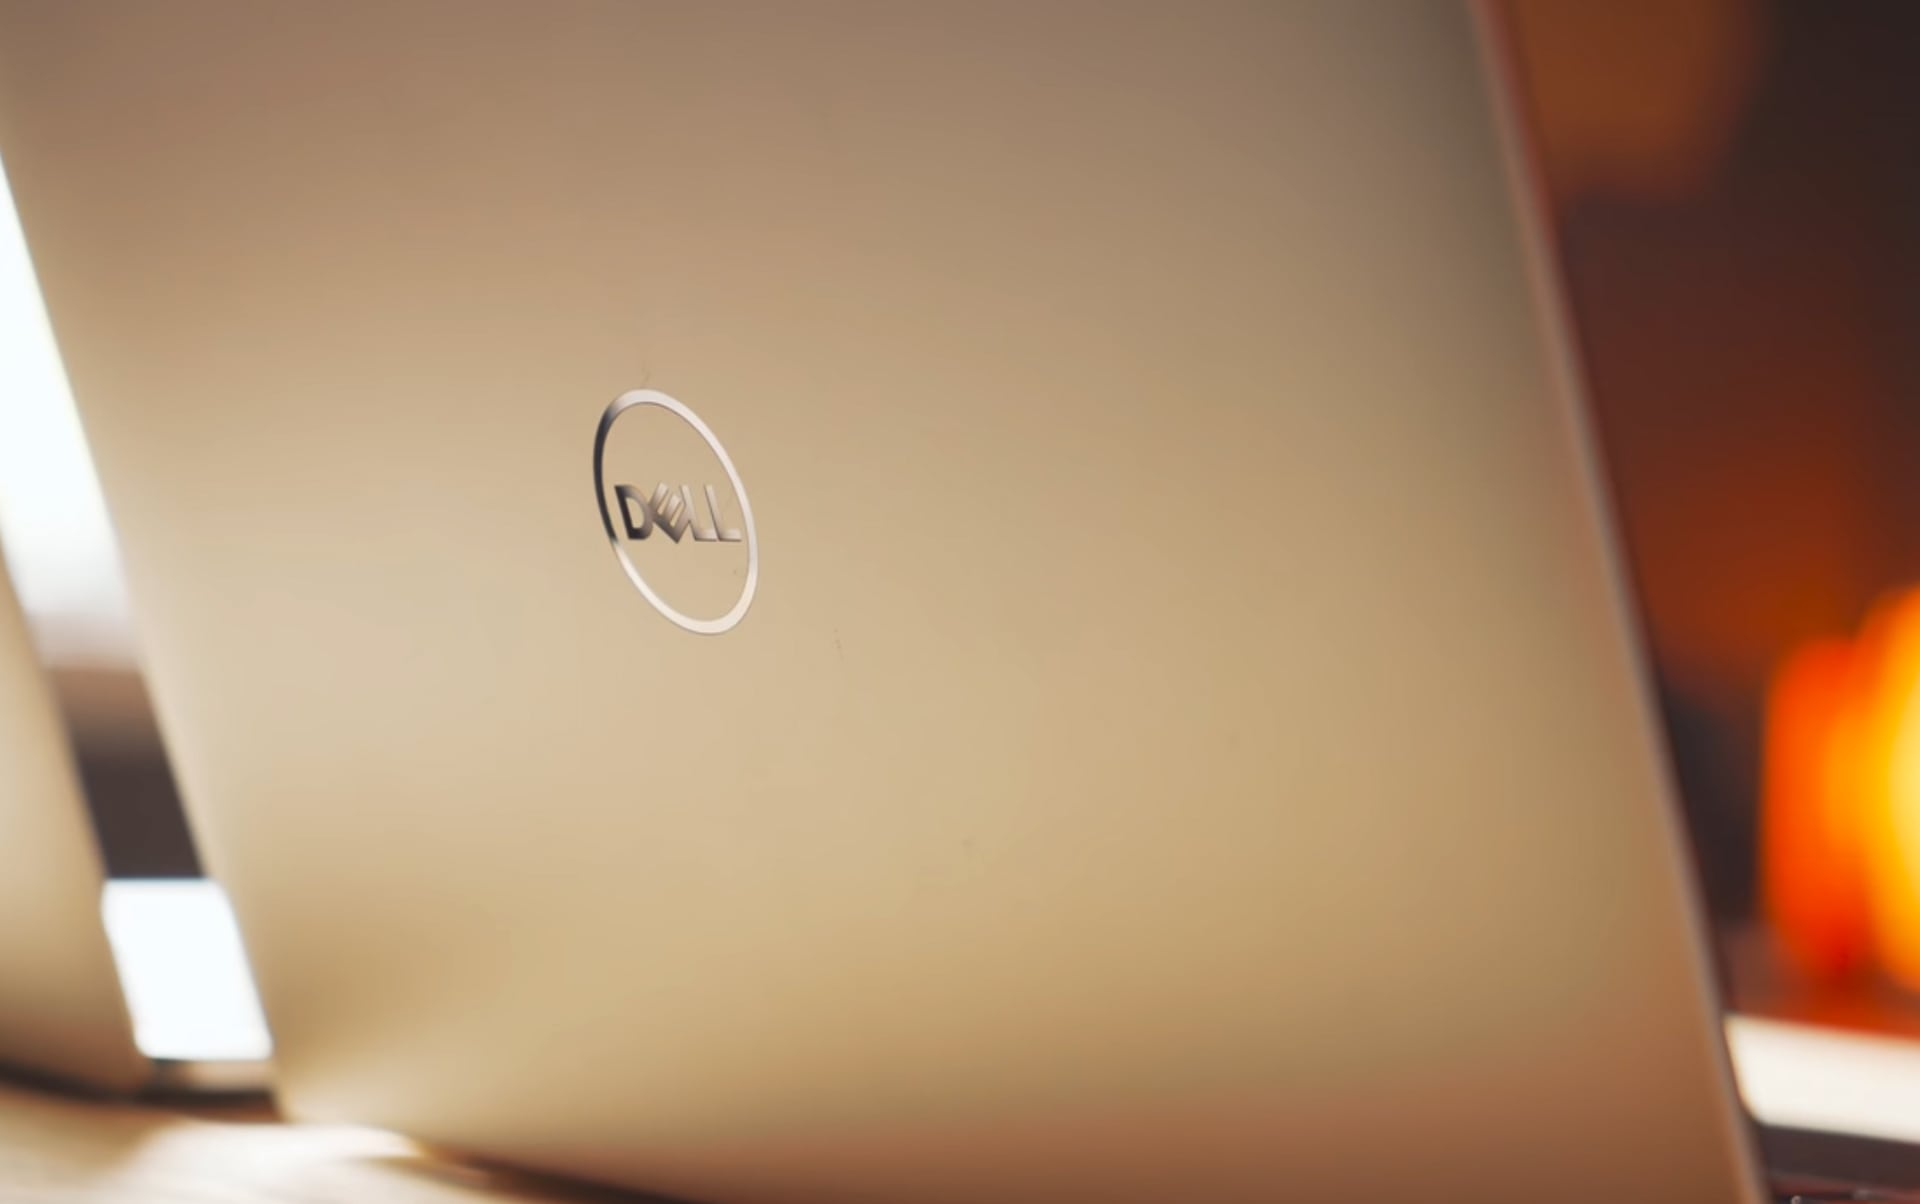 Why are Dell laptops costly